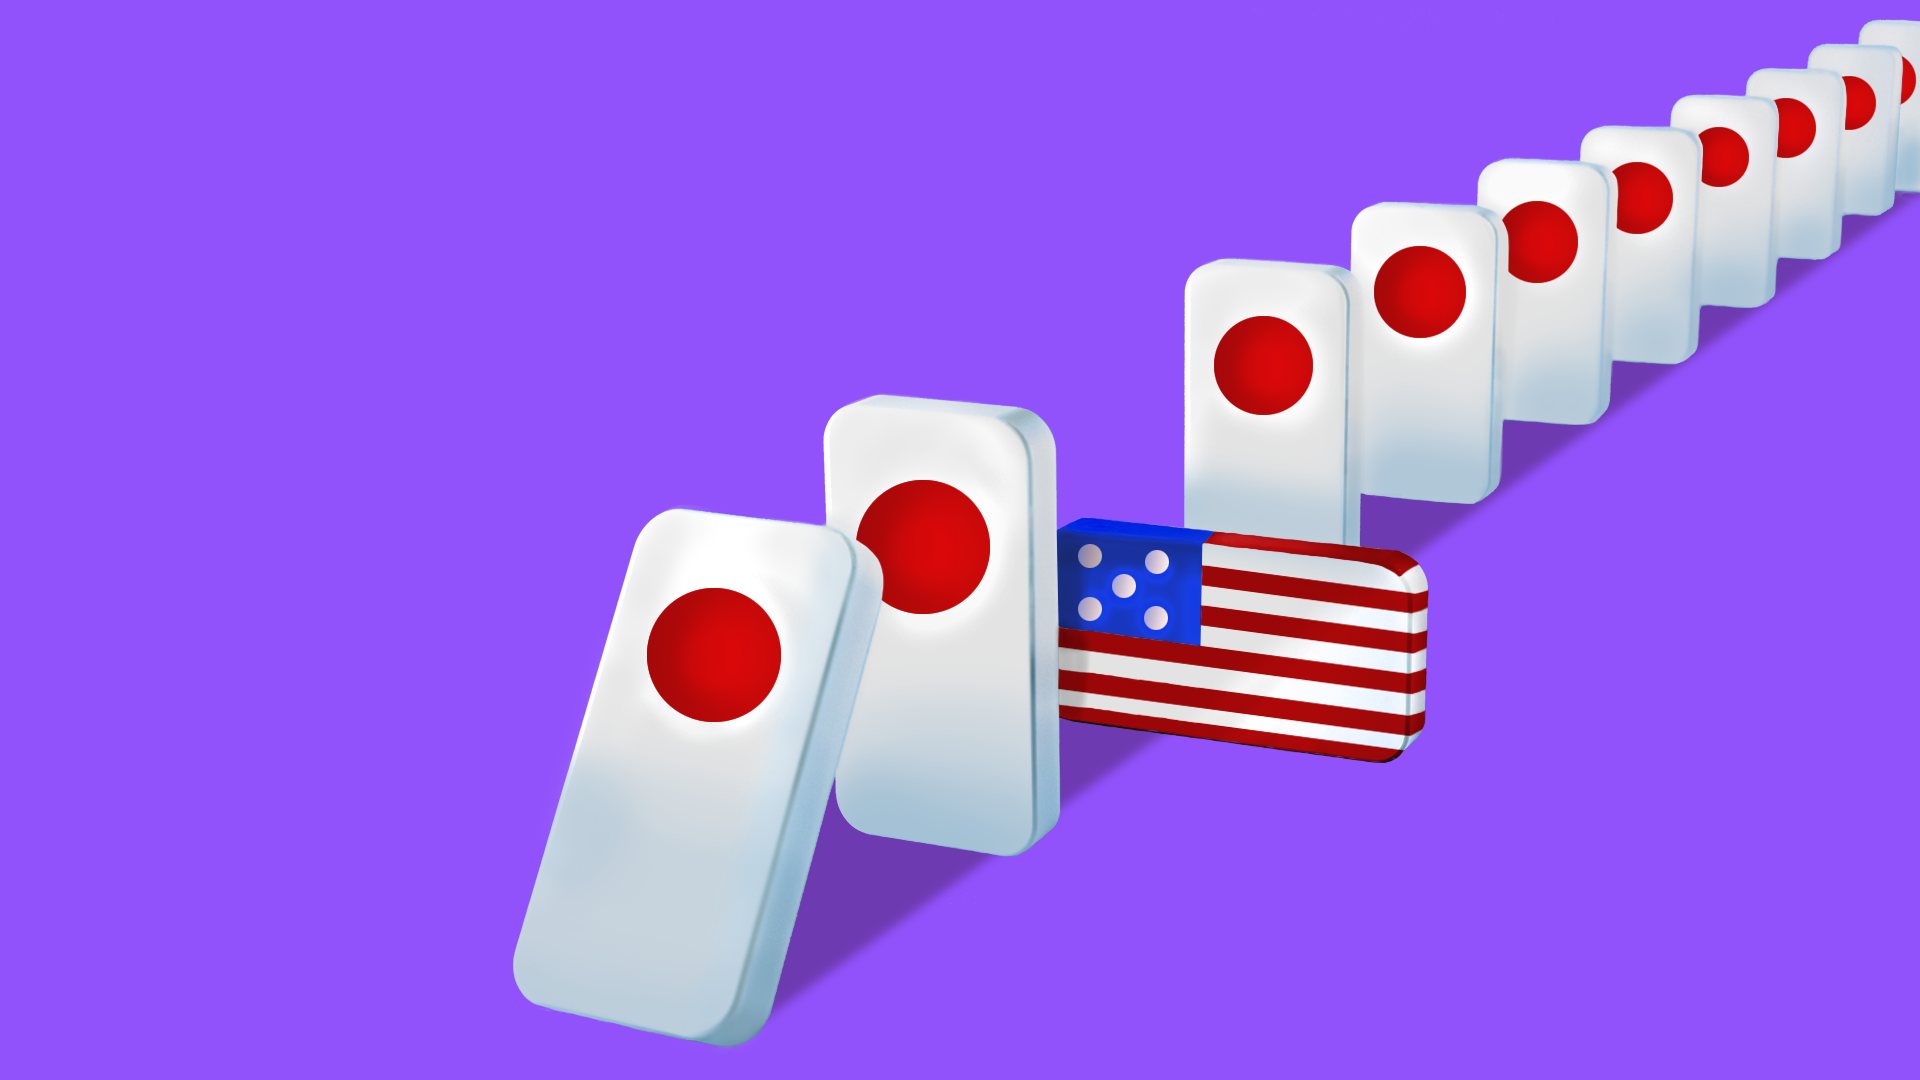 Falling dominoes with the Japanese rising sun, blocked by a U.S. flag